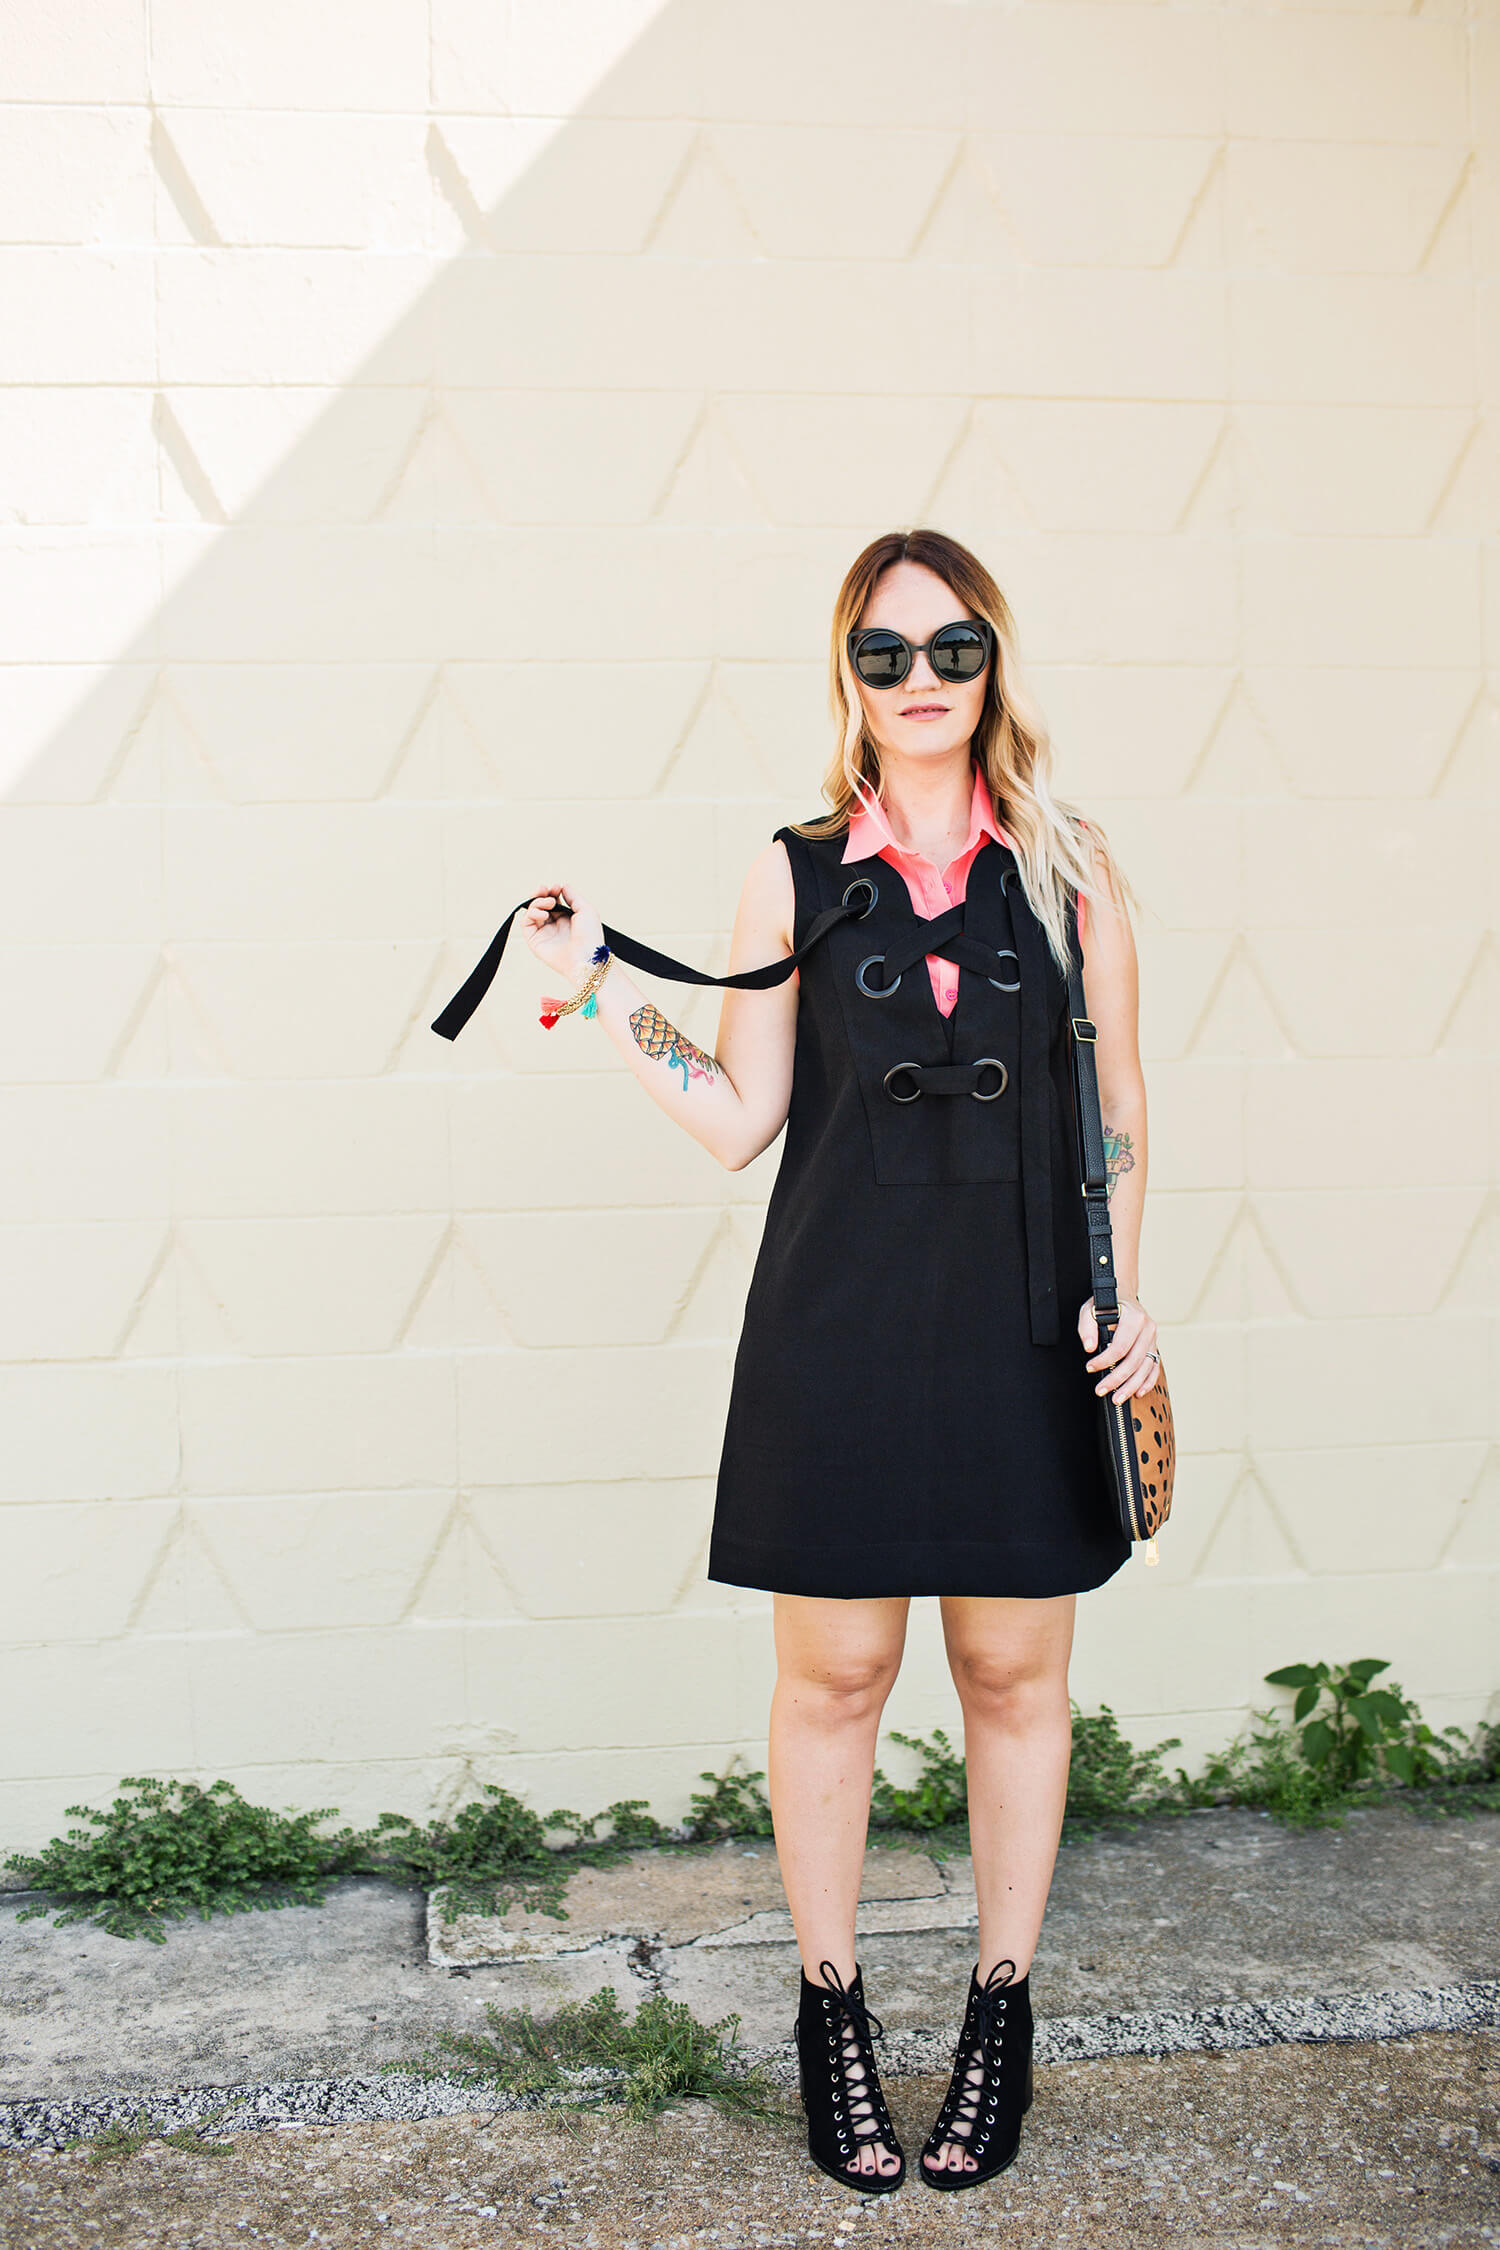 Lace up dress and shoes